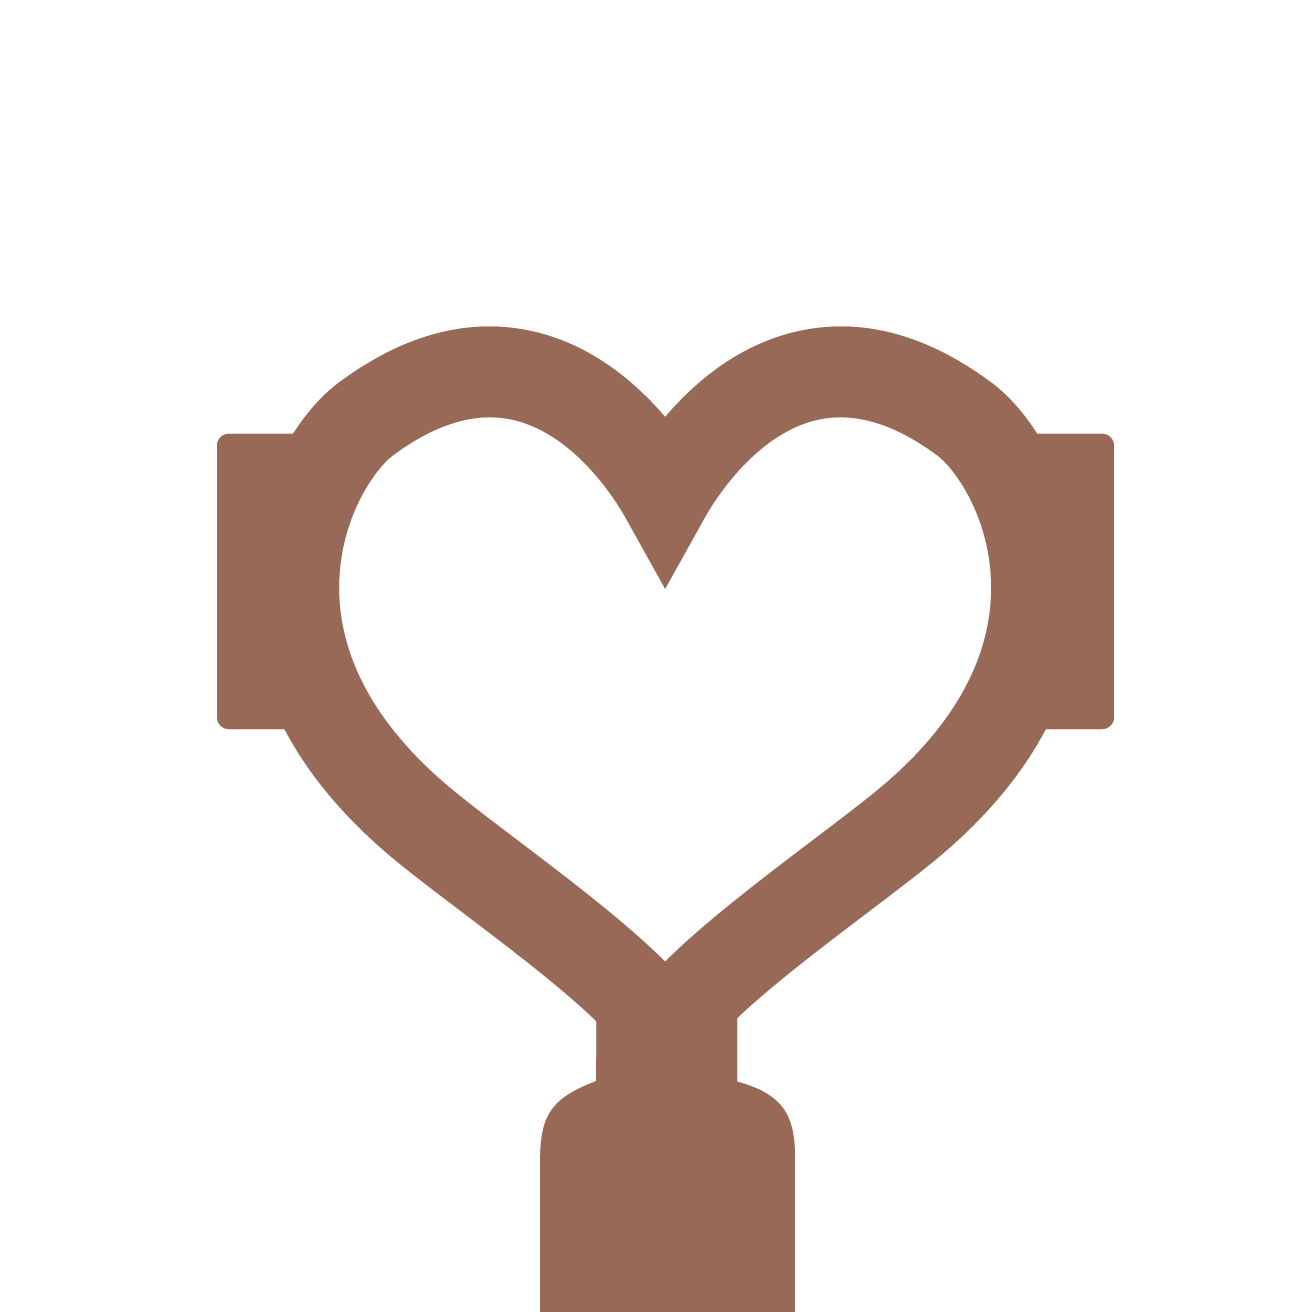 Moccamaster Technivorm KBG741 AO Copper, with FREE 250g bag of Coffee